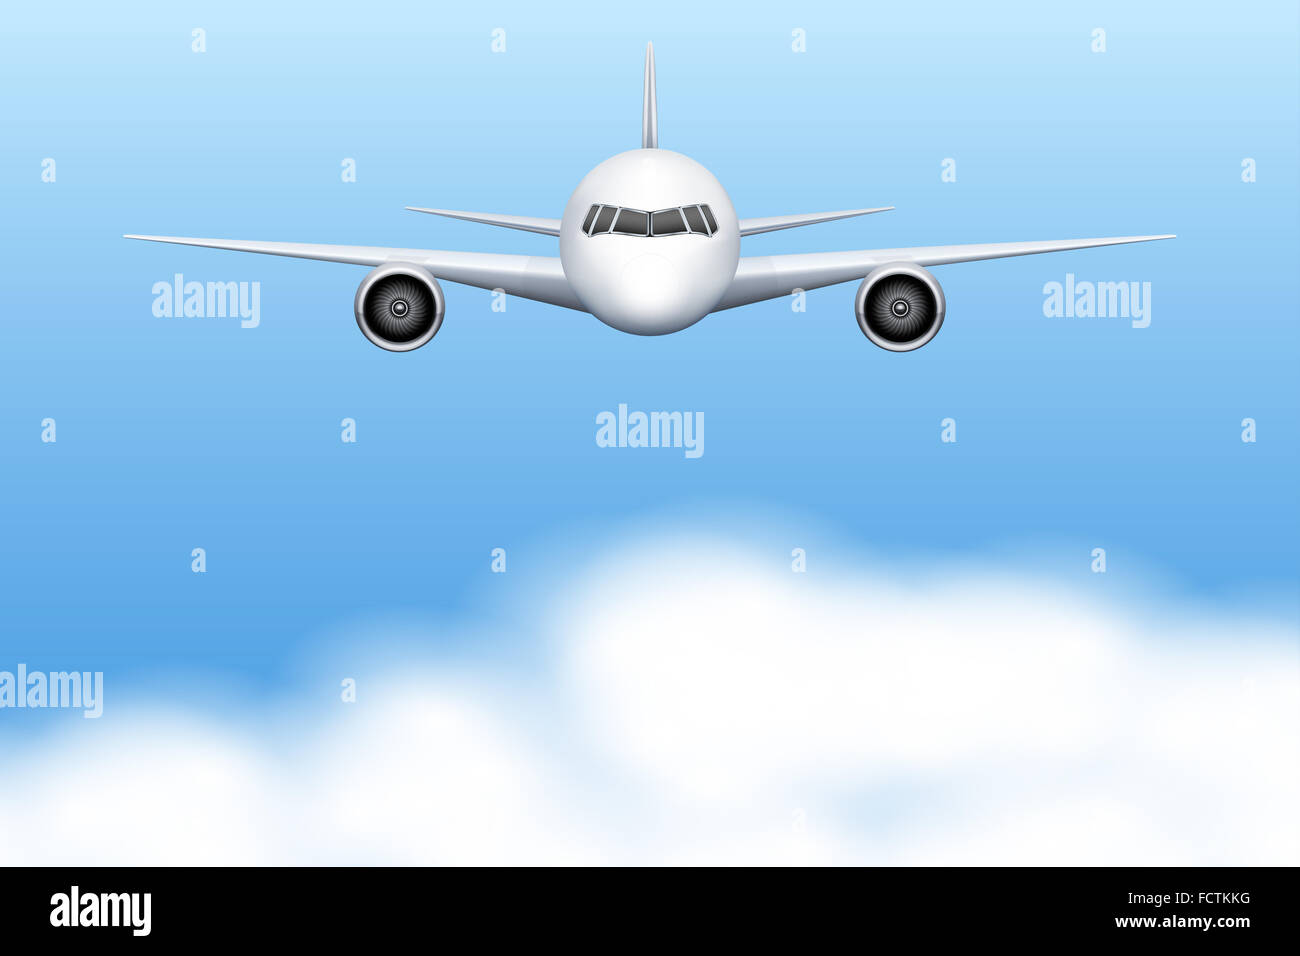 Civil Aircraft airplane - Stock Image